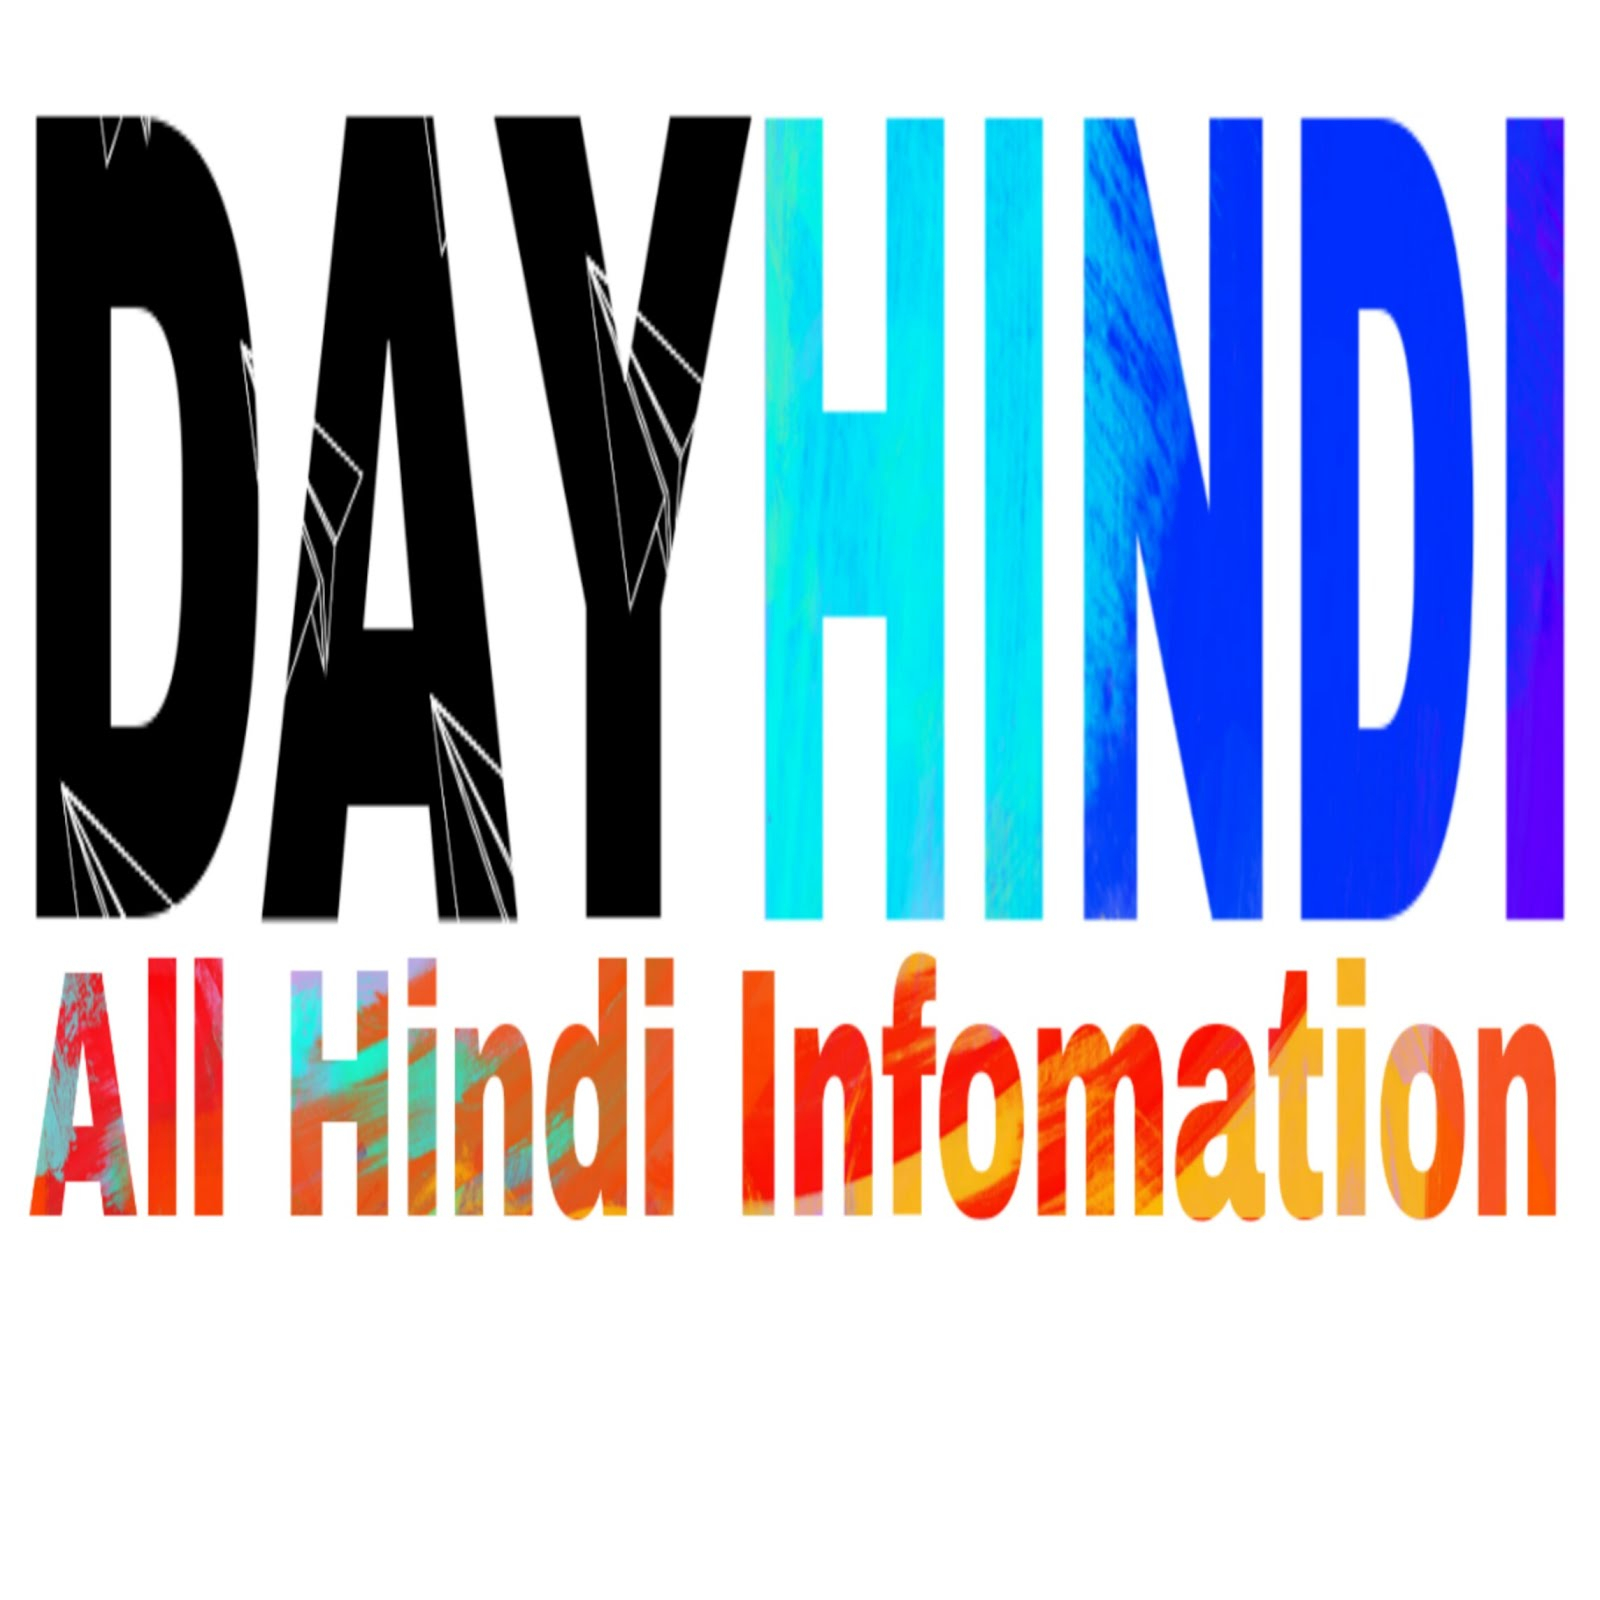 Dayhindi.com | All Hindi Infomation on Dayhindi.com